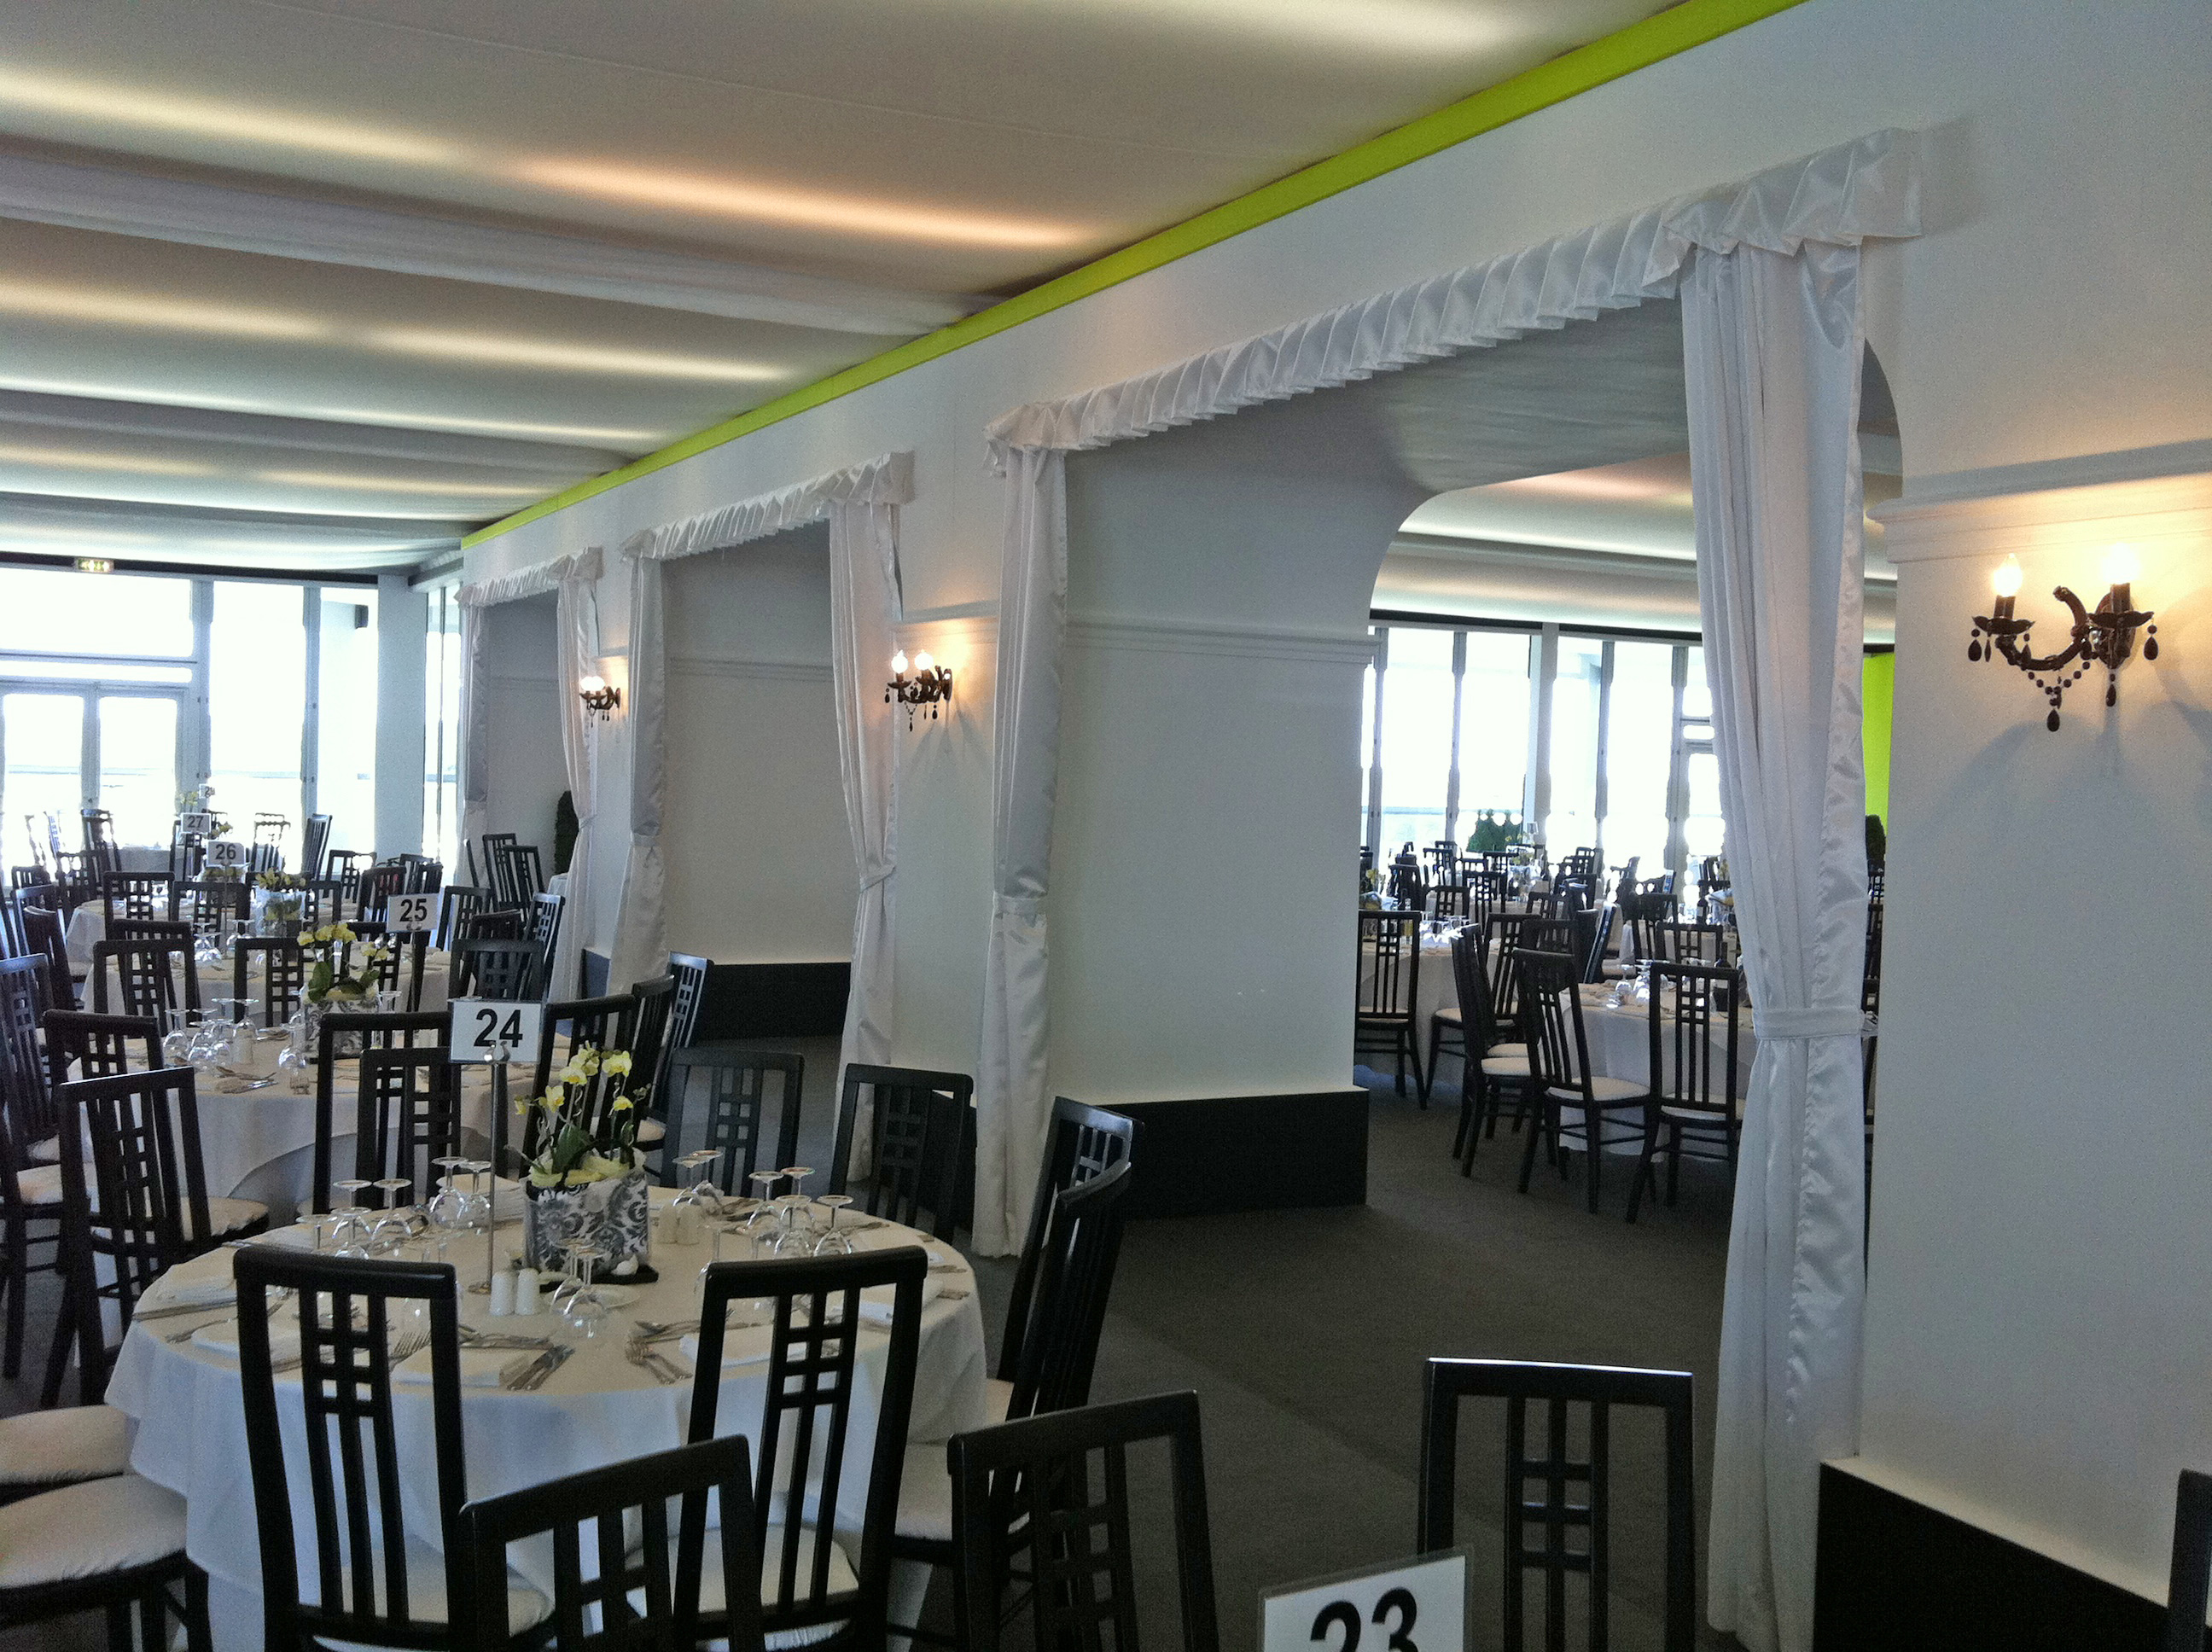 Trevira Satin Drapes at Ascot